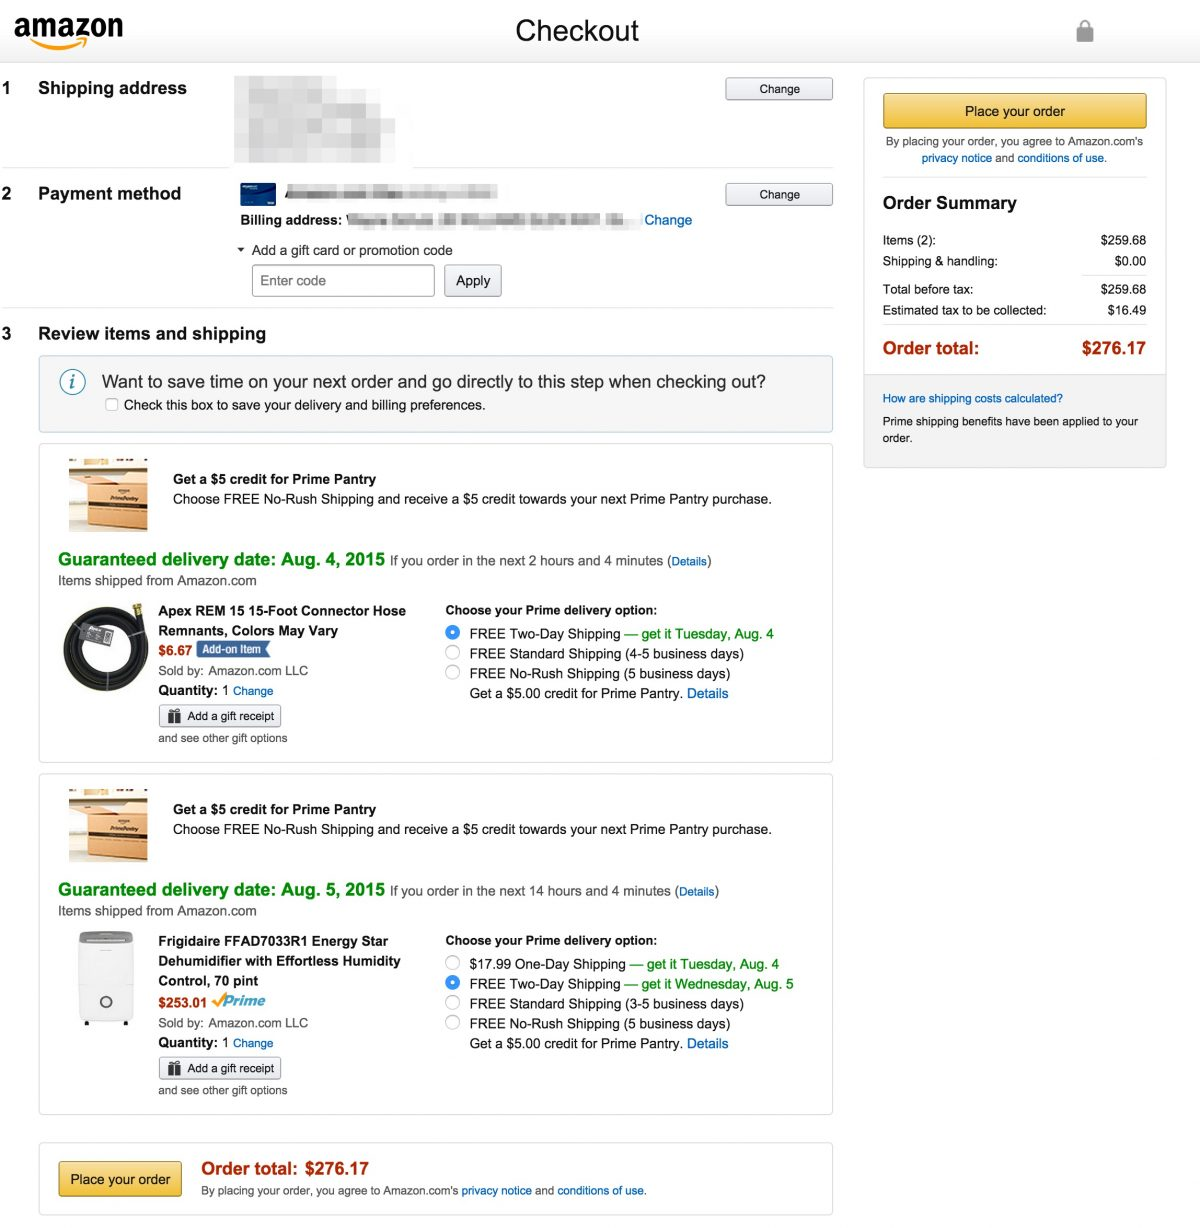 Amazon Offering $5 Prime Pantry Credit for No-Rush Shipping!